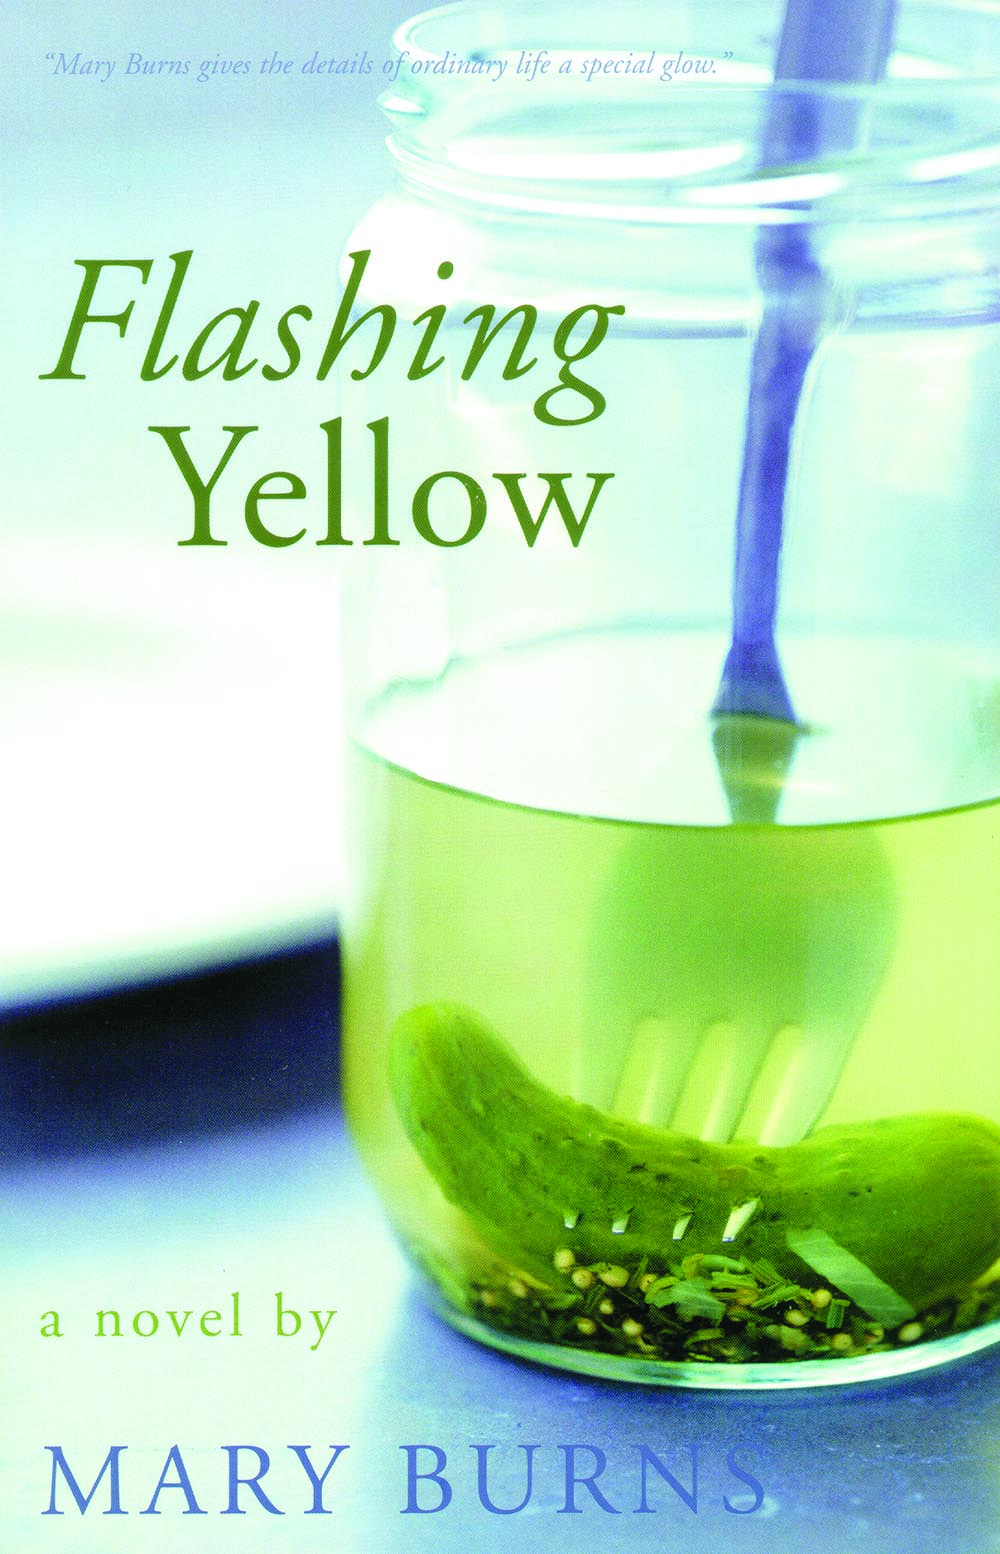 Flashing Yellow by Mary Burns